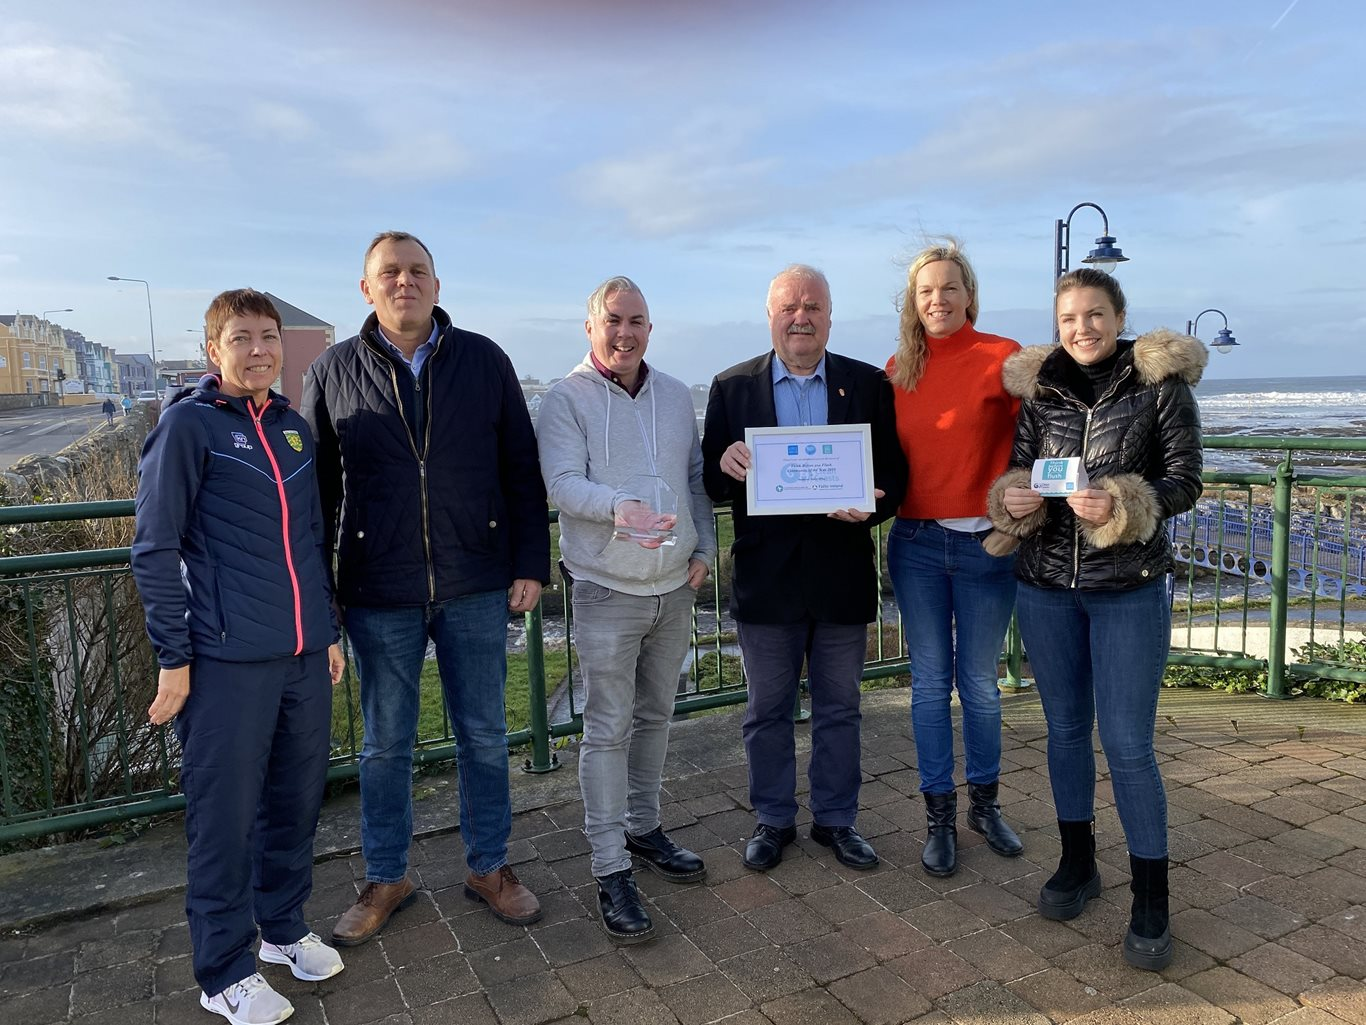 Business representatives from Bundoran with the Think Before You Flush Community of the Year award 2019.